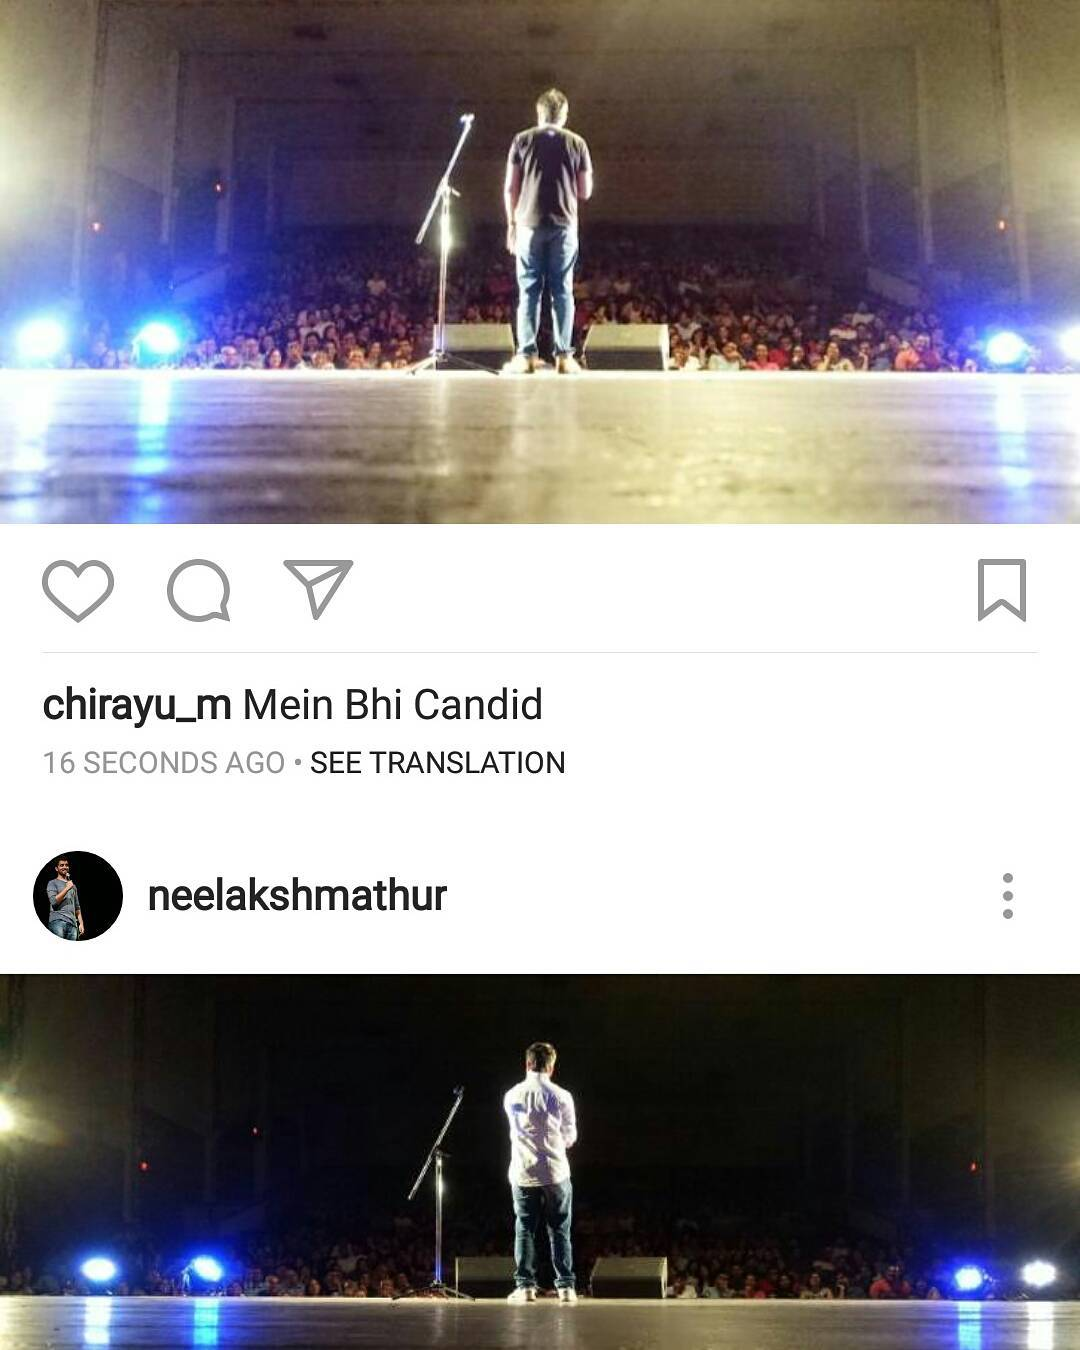 lol. When 2 comedians peform at the same venue at the same time. @neelakshmathur